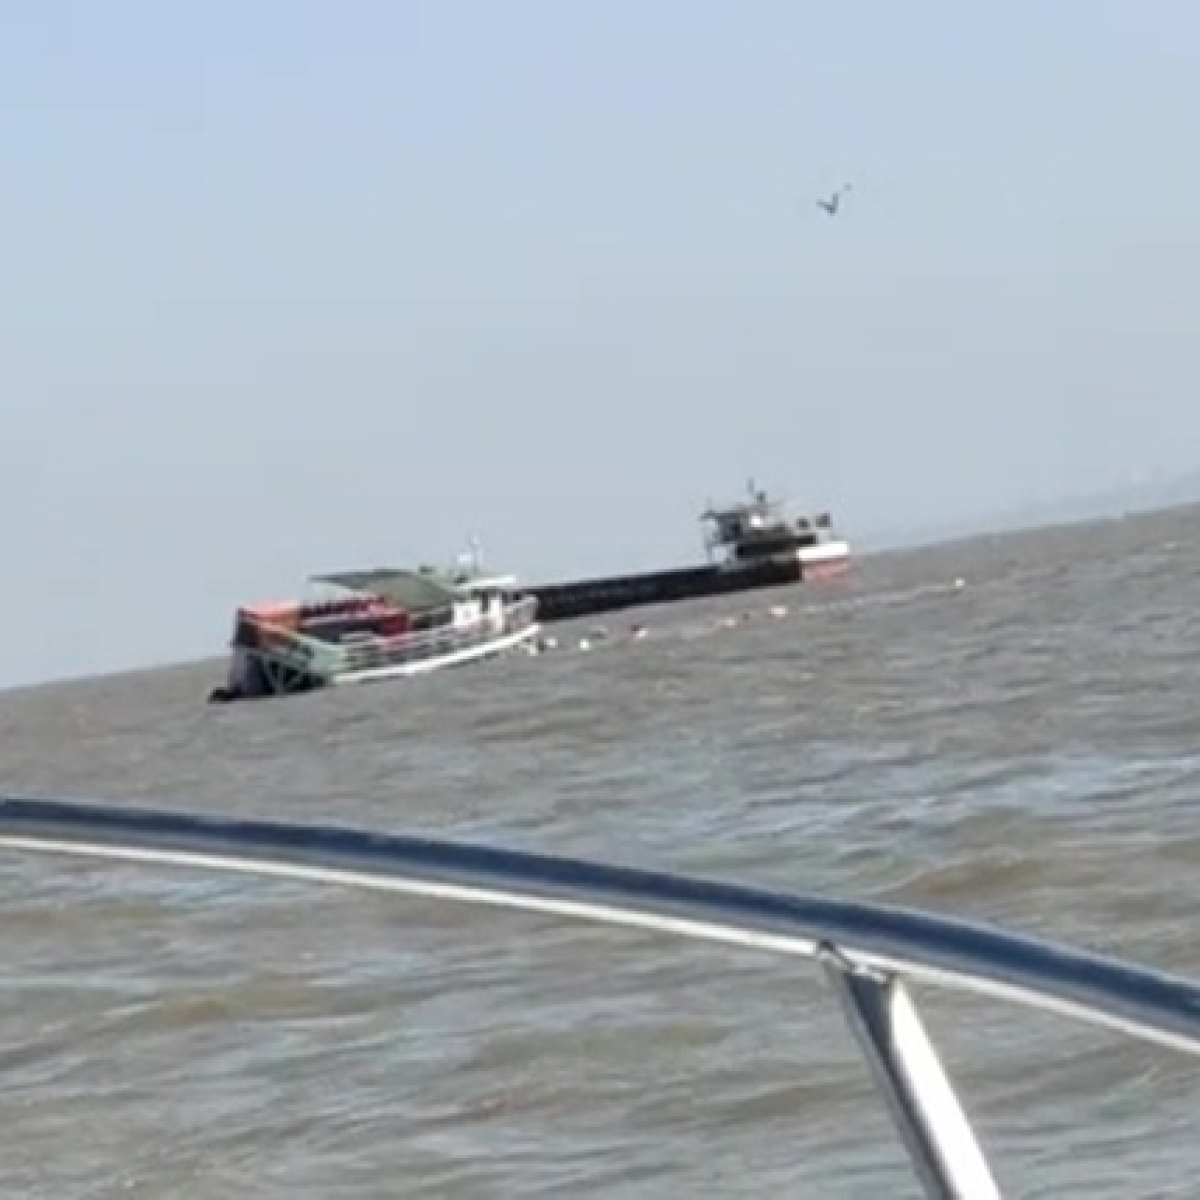 Maharashtra: Boat carrying 80 passengers capsizes near Mandwa, all passengers rescued